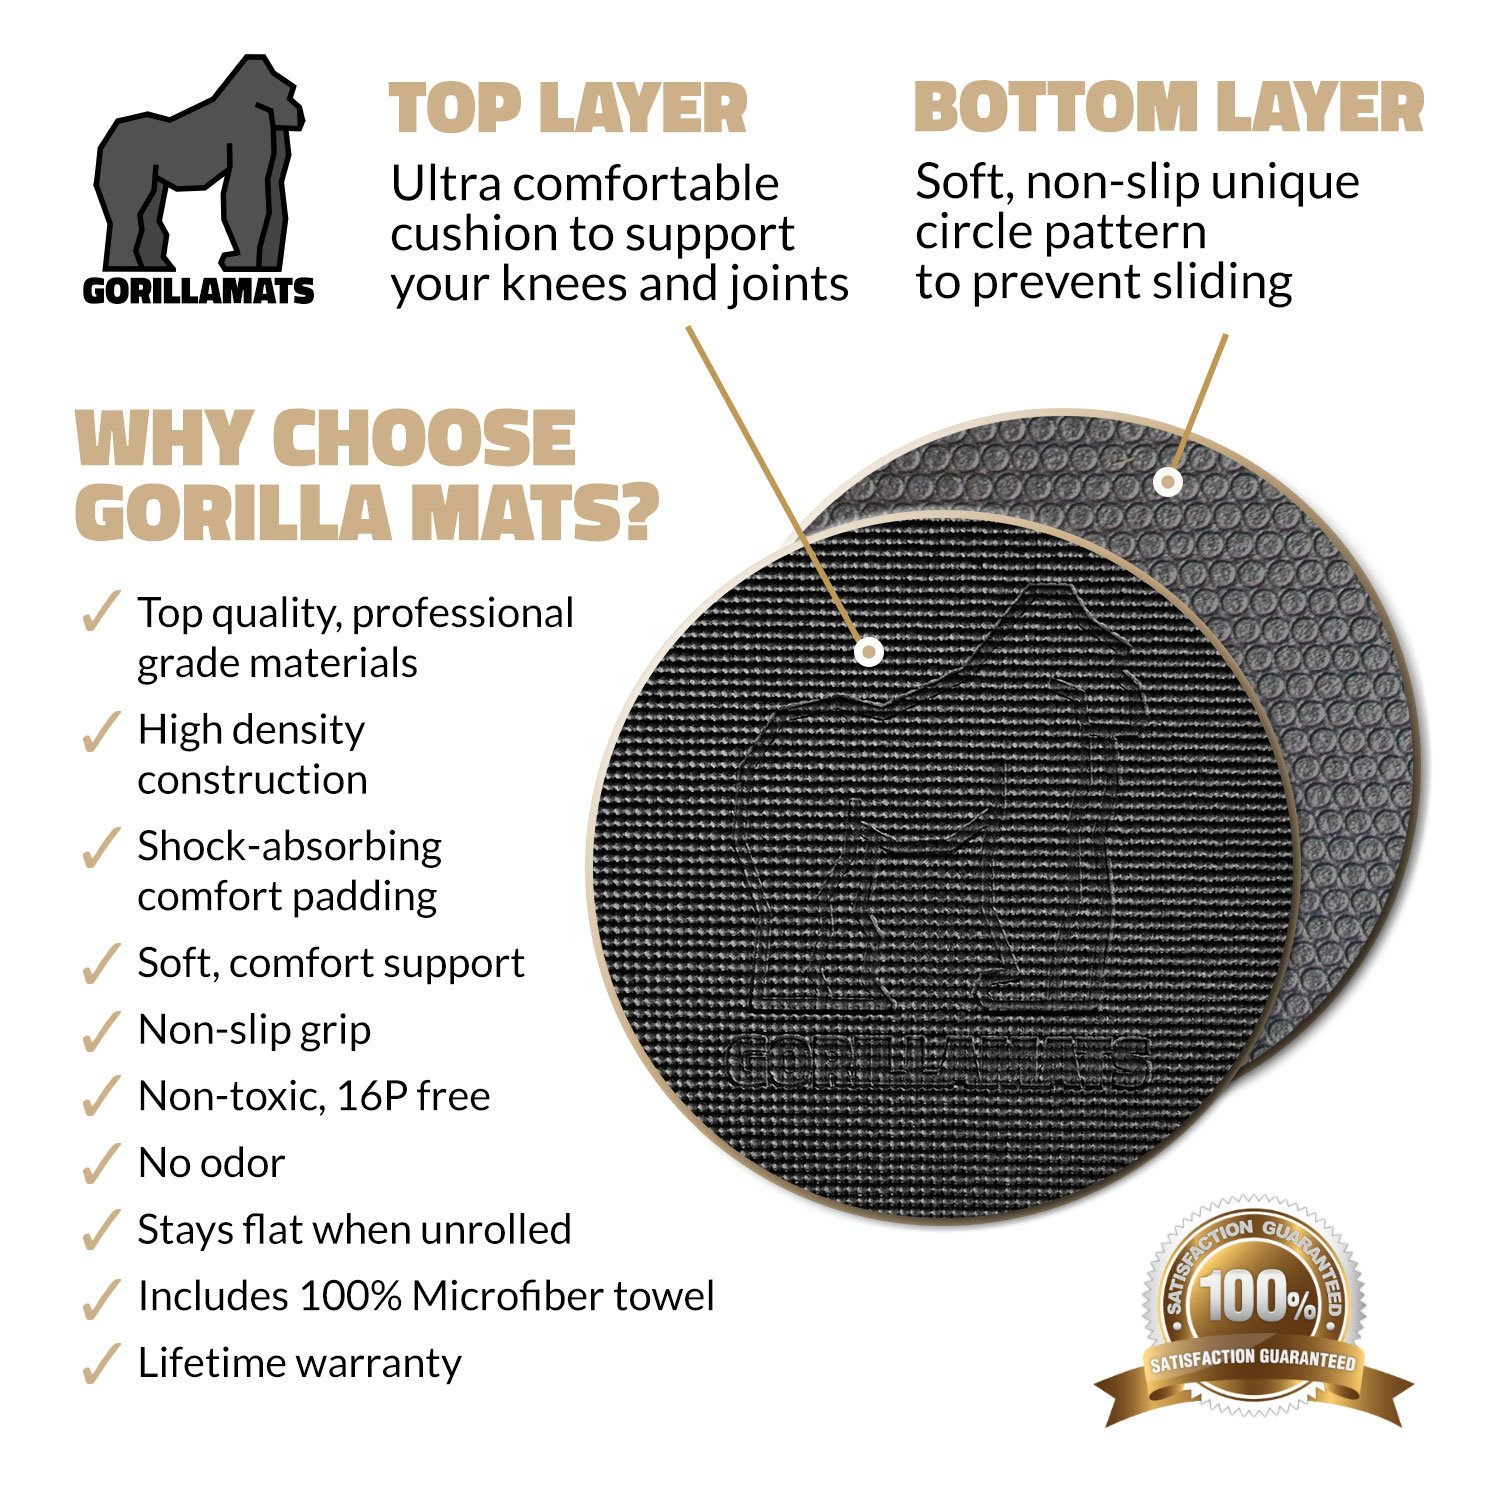 Premium Large Yoga Mat - 7' x 5' x 8mm Extra Thick, Ultra Comfortable, Non-Toxic, Non-Slip, Barefoot Exercise Mat - Yoga, Stretching, Cardio Workout Mats for Home Gym Flooring (84'' Long x 60'' Wide) by Gorilla Mats (Image #3)